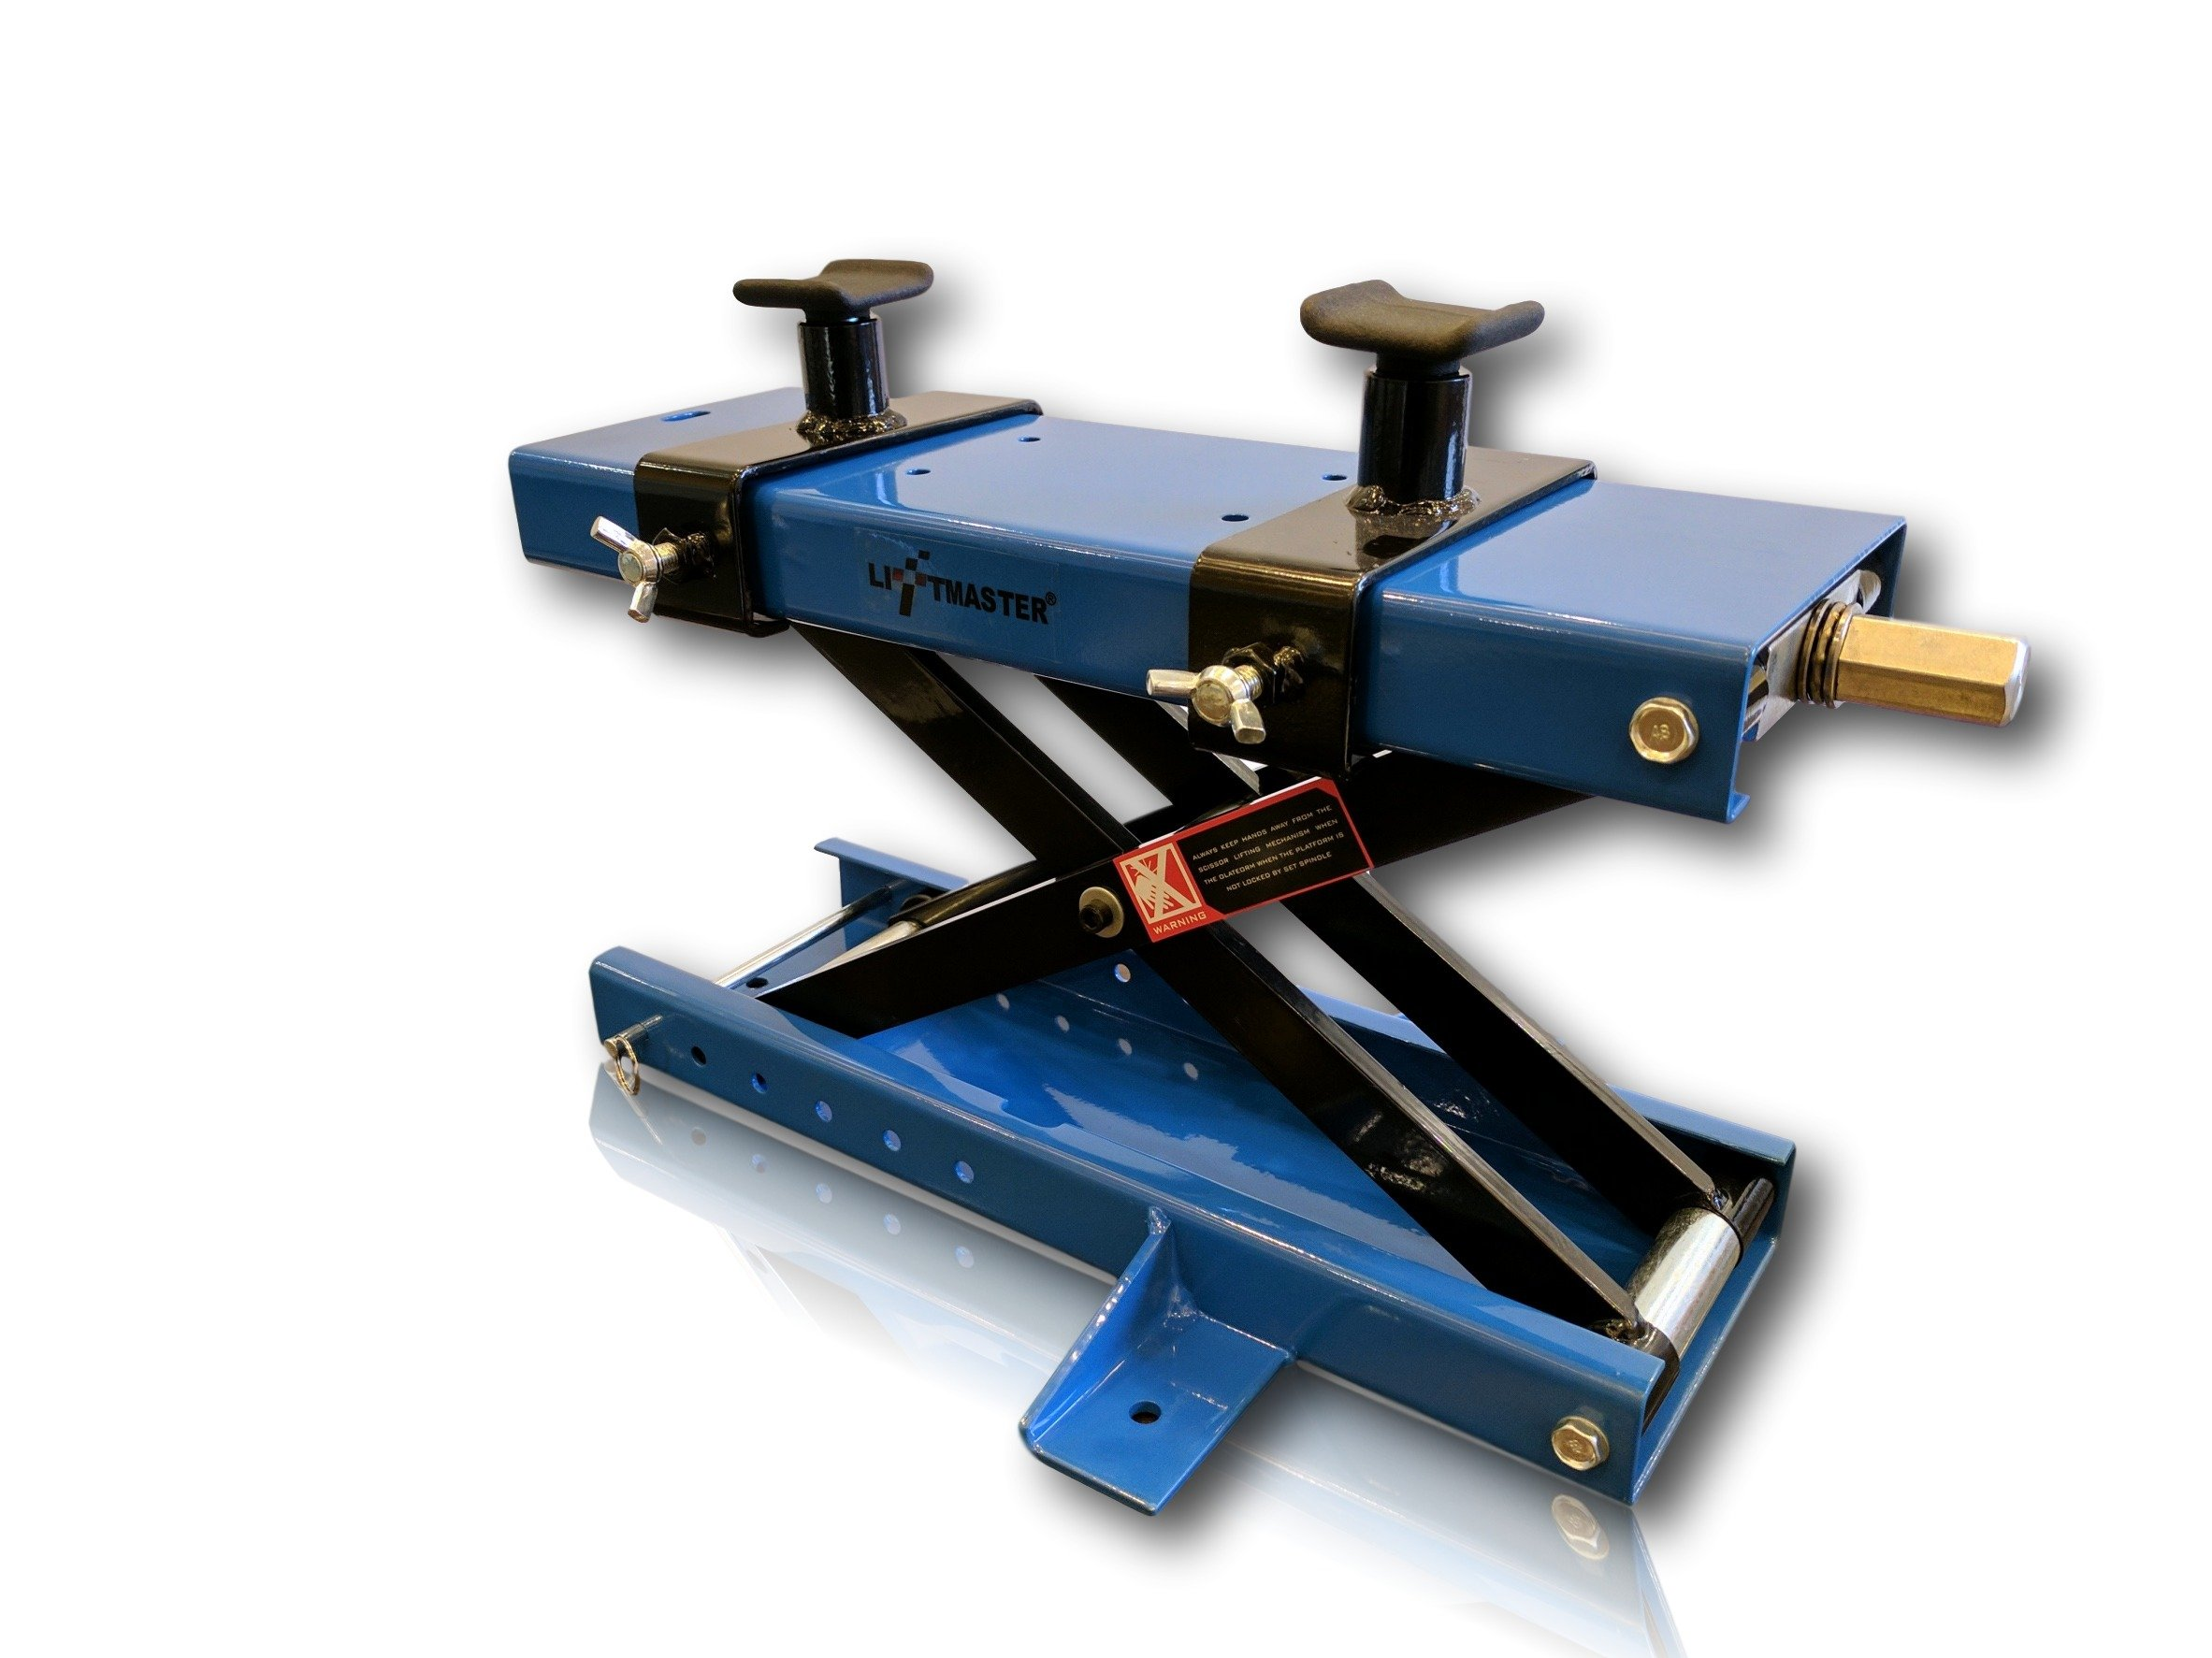 LiftMaster 1100 LB Motorcycle Center Scissor Lift Jack with Safety Pin Hoist Stand Bikes ATVs by LiftMaster (Image #1)